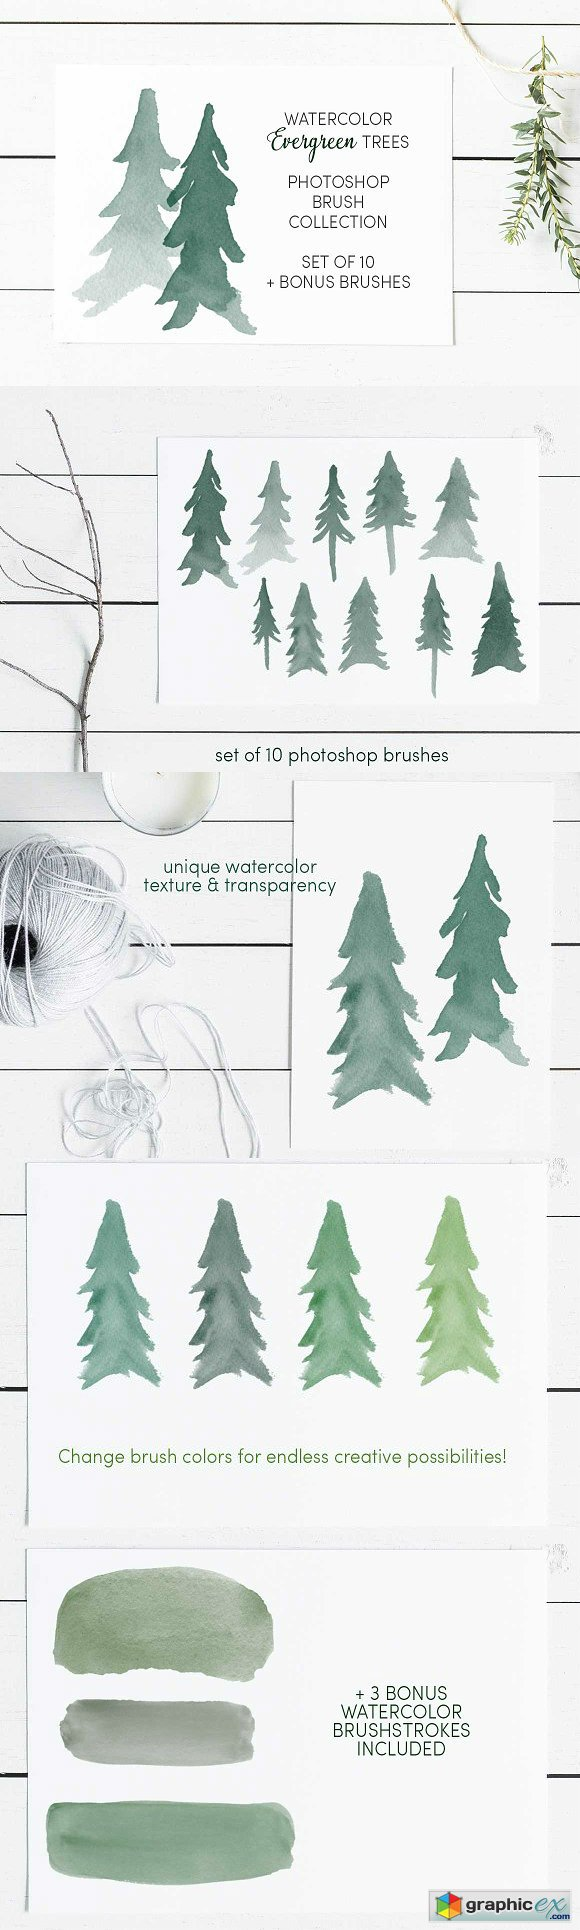 Watercolor Evergreen Trees Brush Set